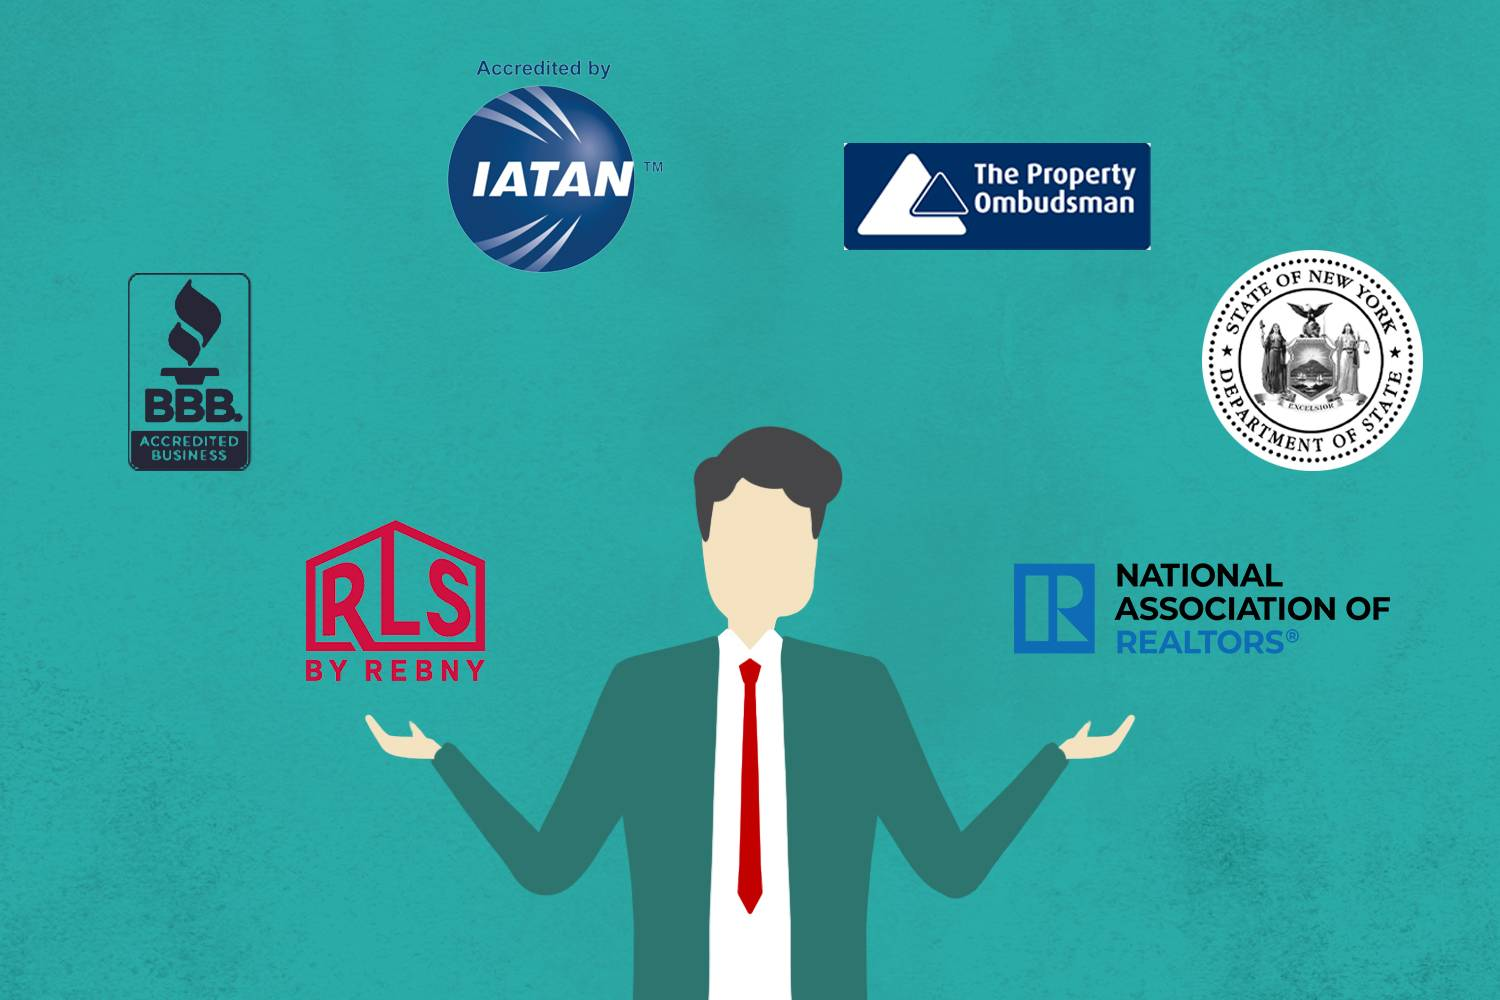 Infografik einer Person in Anzug und Krawatte, umgeben von Icons des Better Business Bureaus, IATAN, REBNY, der National Association of Realtors, des NY State Department of State und The Property Ombudsman